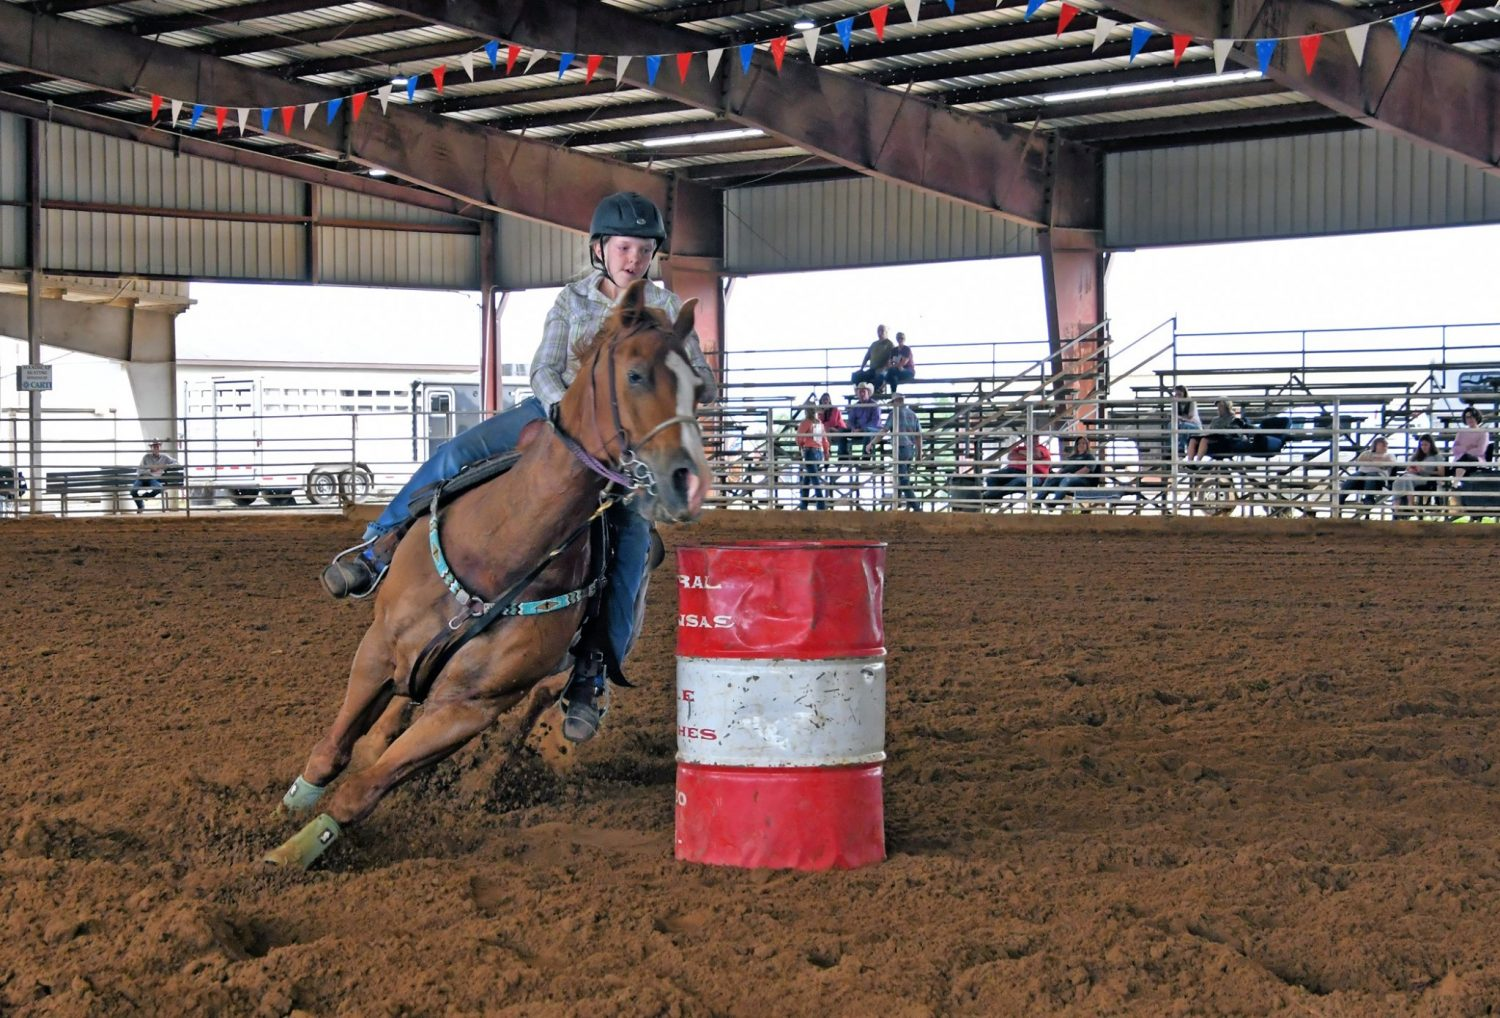 A young girl takes part in the White County Fair's top-ranked rodeo